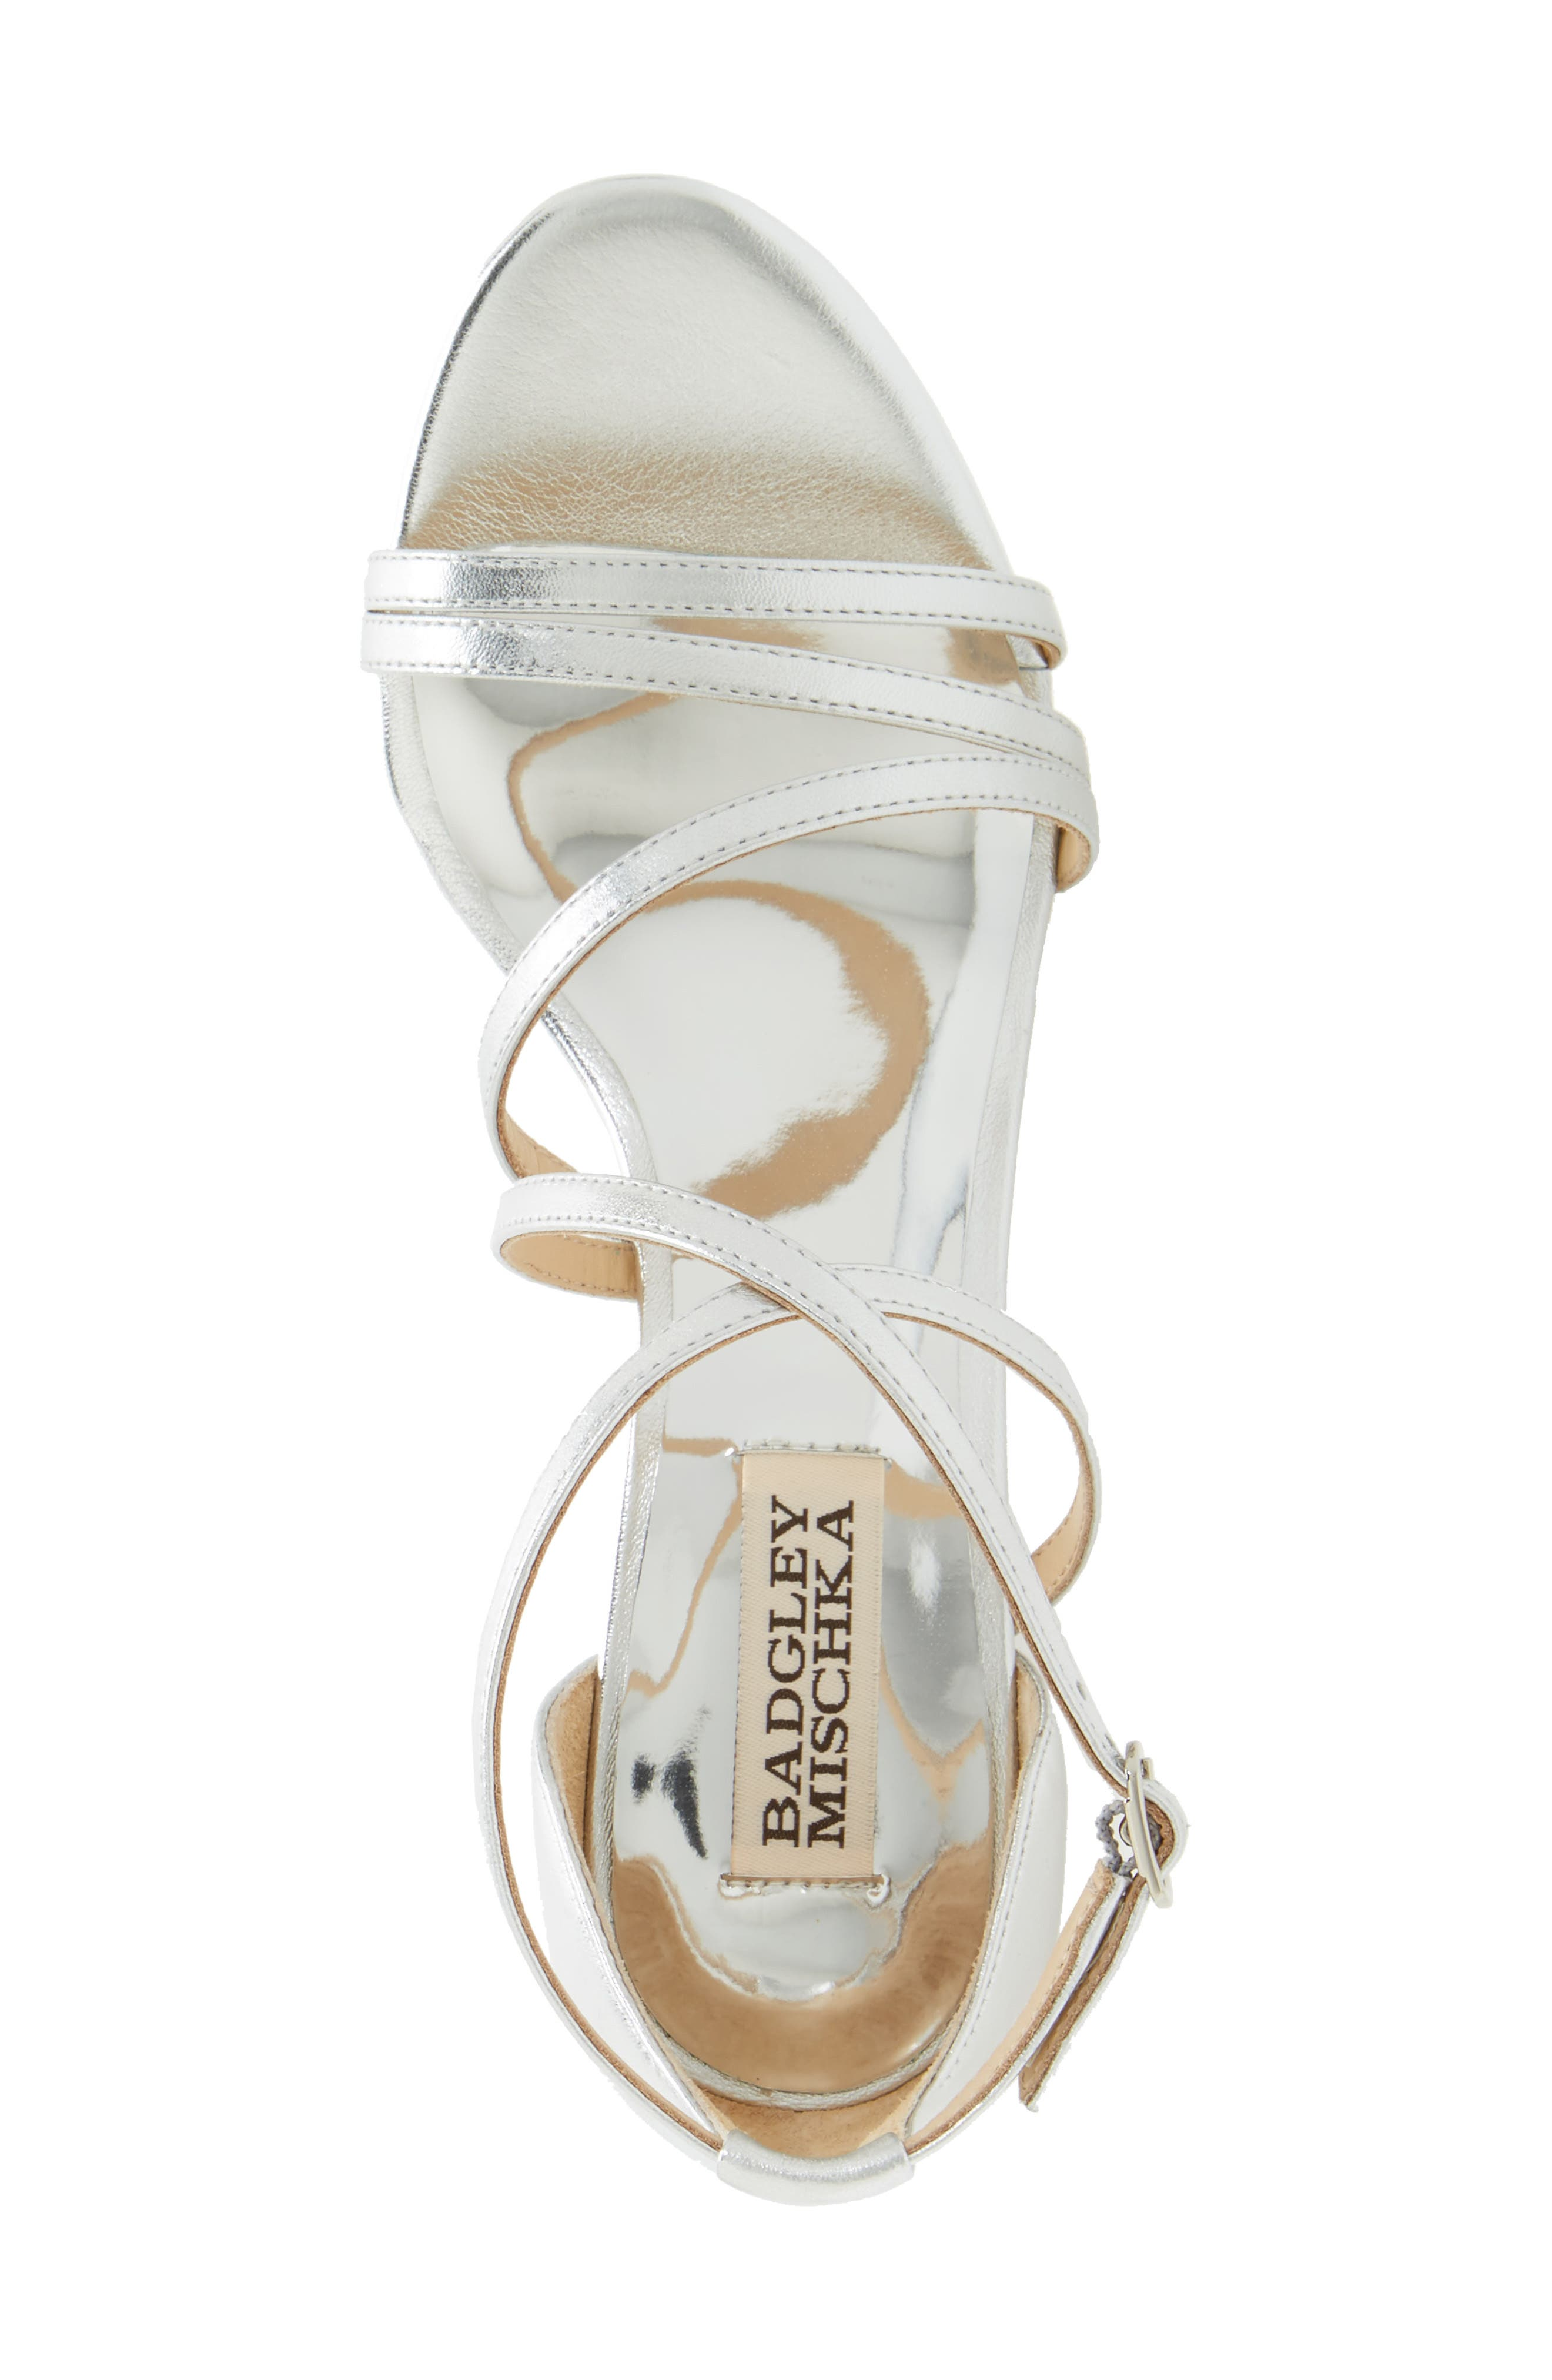 Bonanza Strappy Wedge Sandal,                             Alternate thumbnail 3, color,                             046